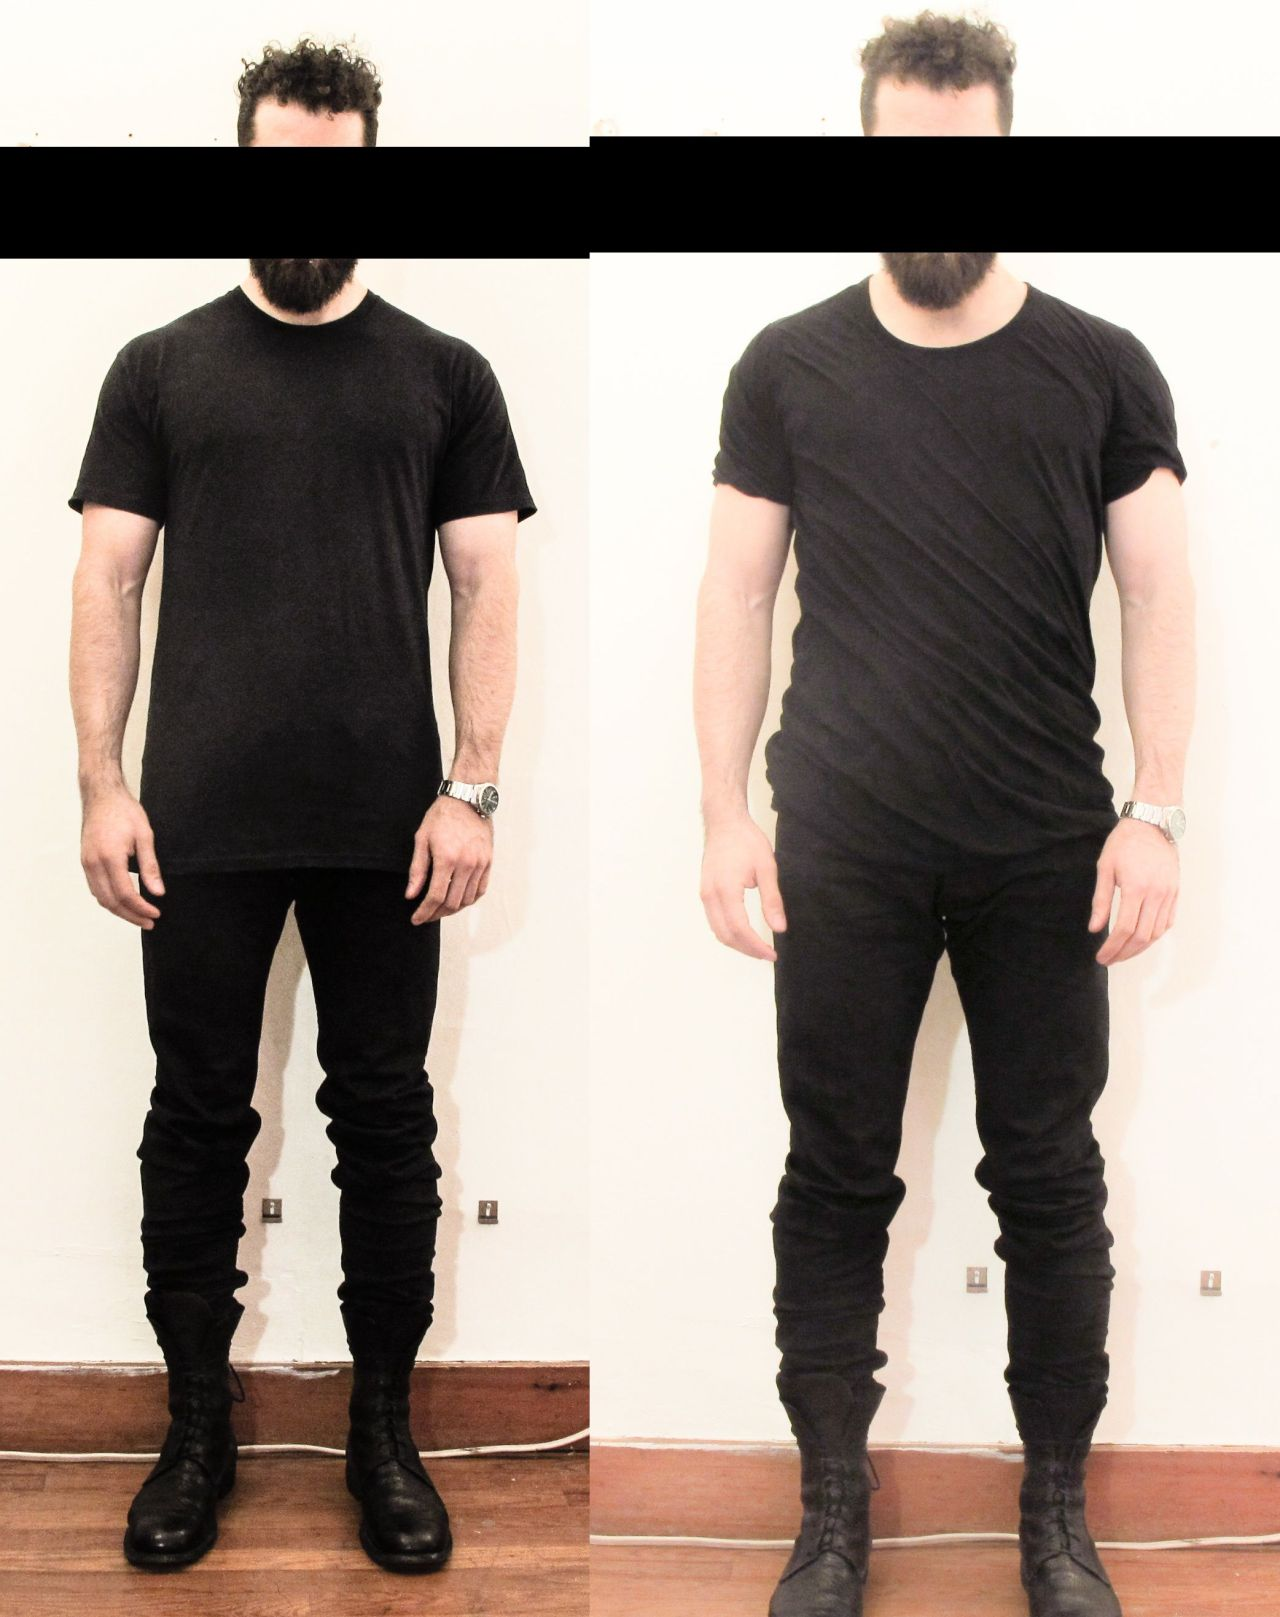 the difference between a $450 black t-shirt from Rick Owens and a $5 black t-shirt from Hanes